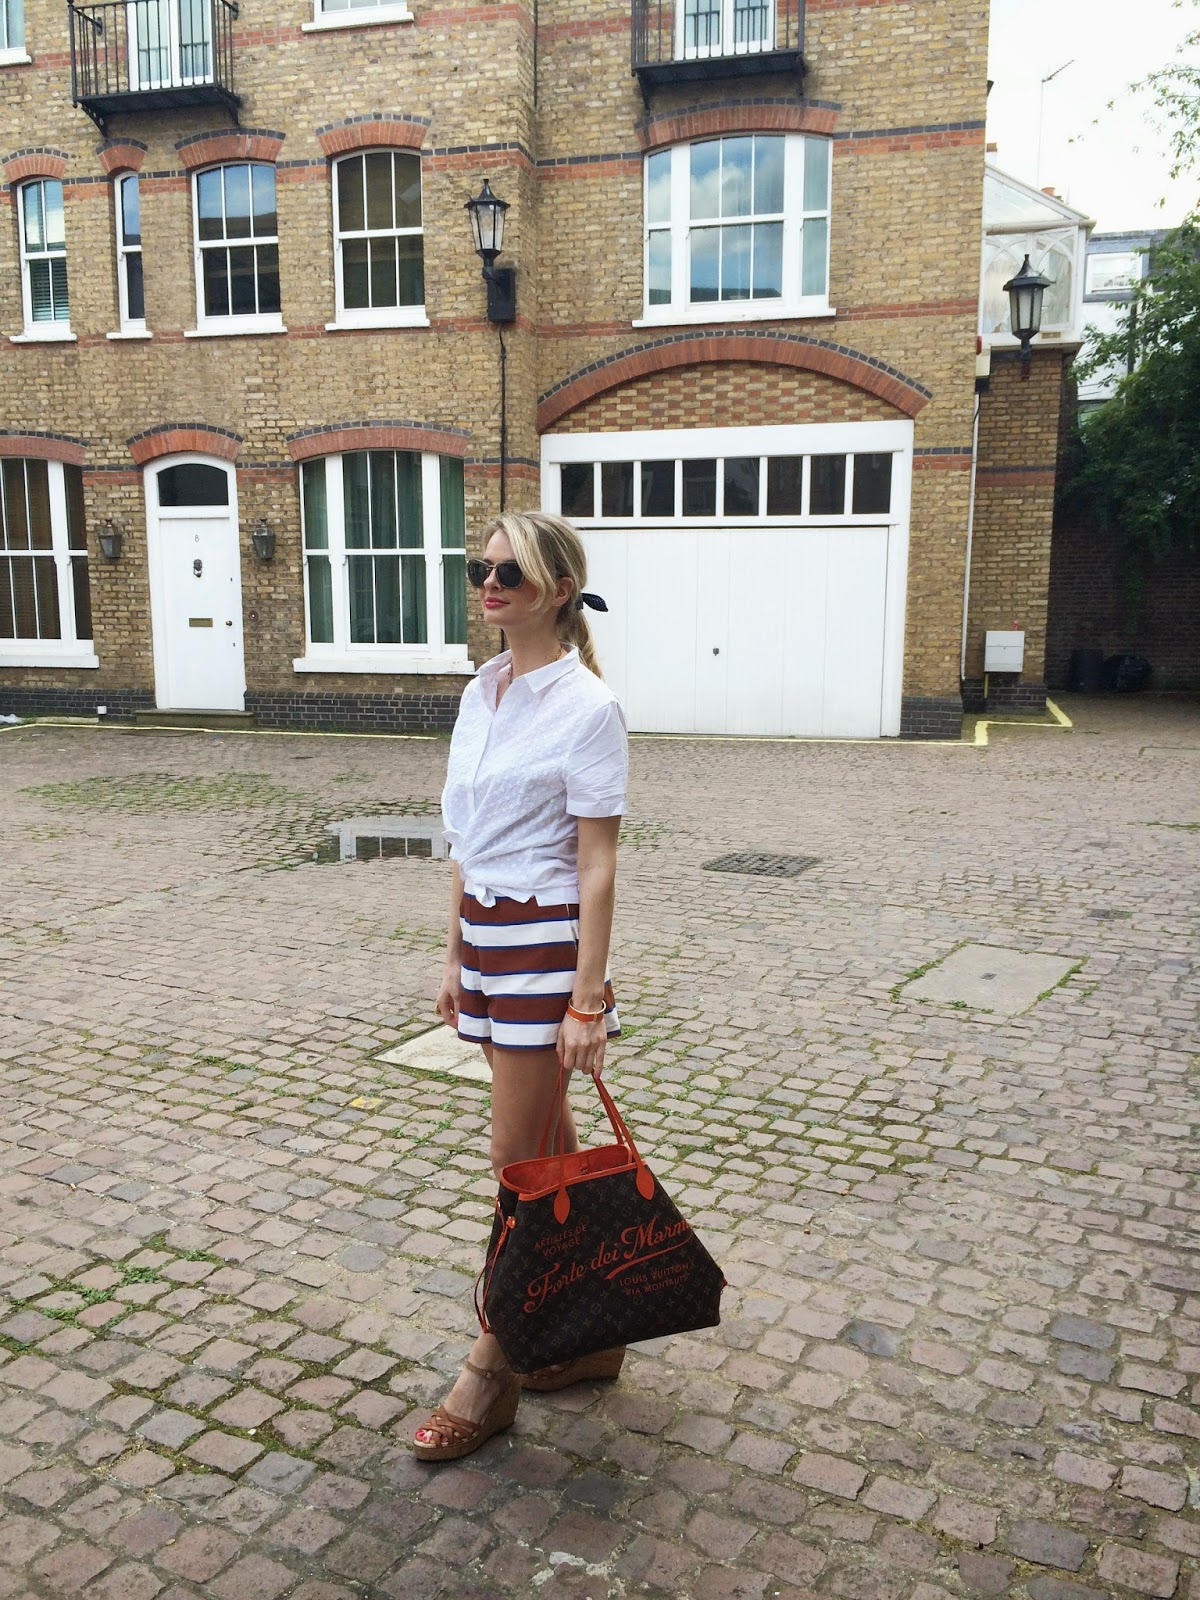 styldby, gap styldby, gap shirt, asos, asos shorts, asos trousers, gap wedge heels, gap shoes, gap sandals, wedge heel sandals, louis vuitton bag